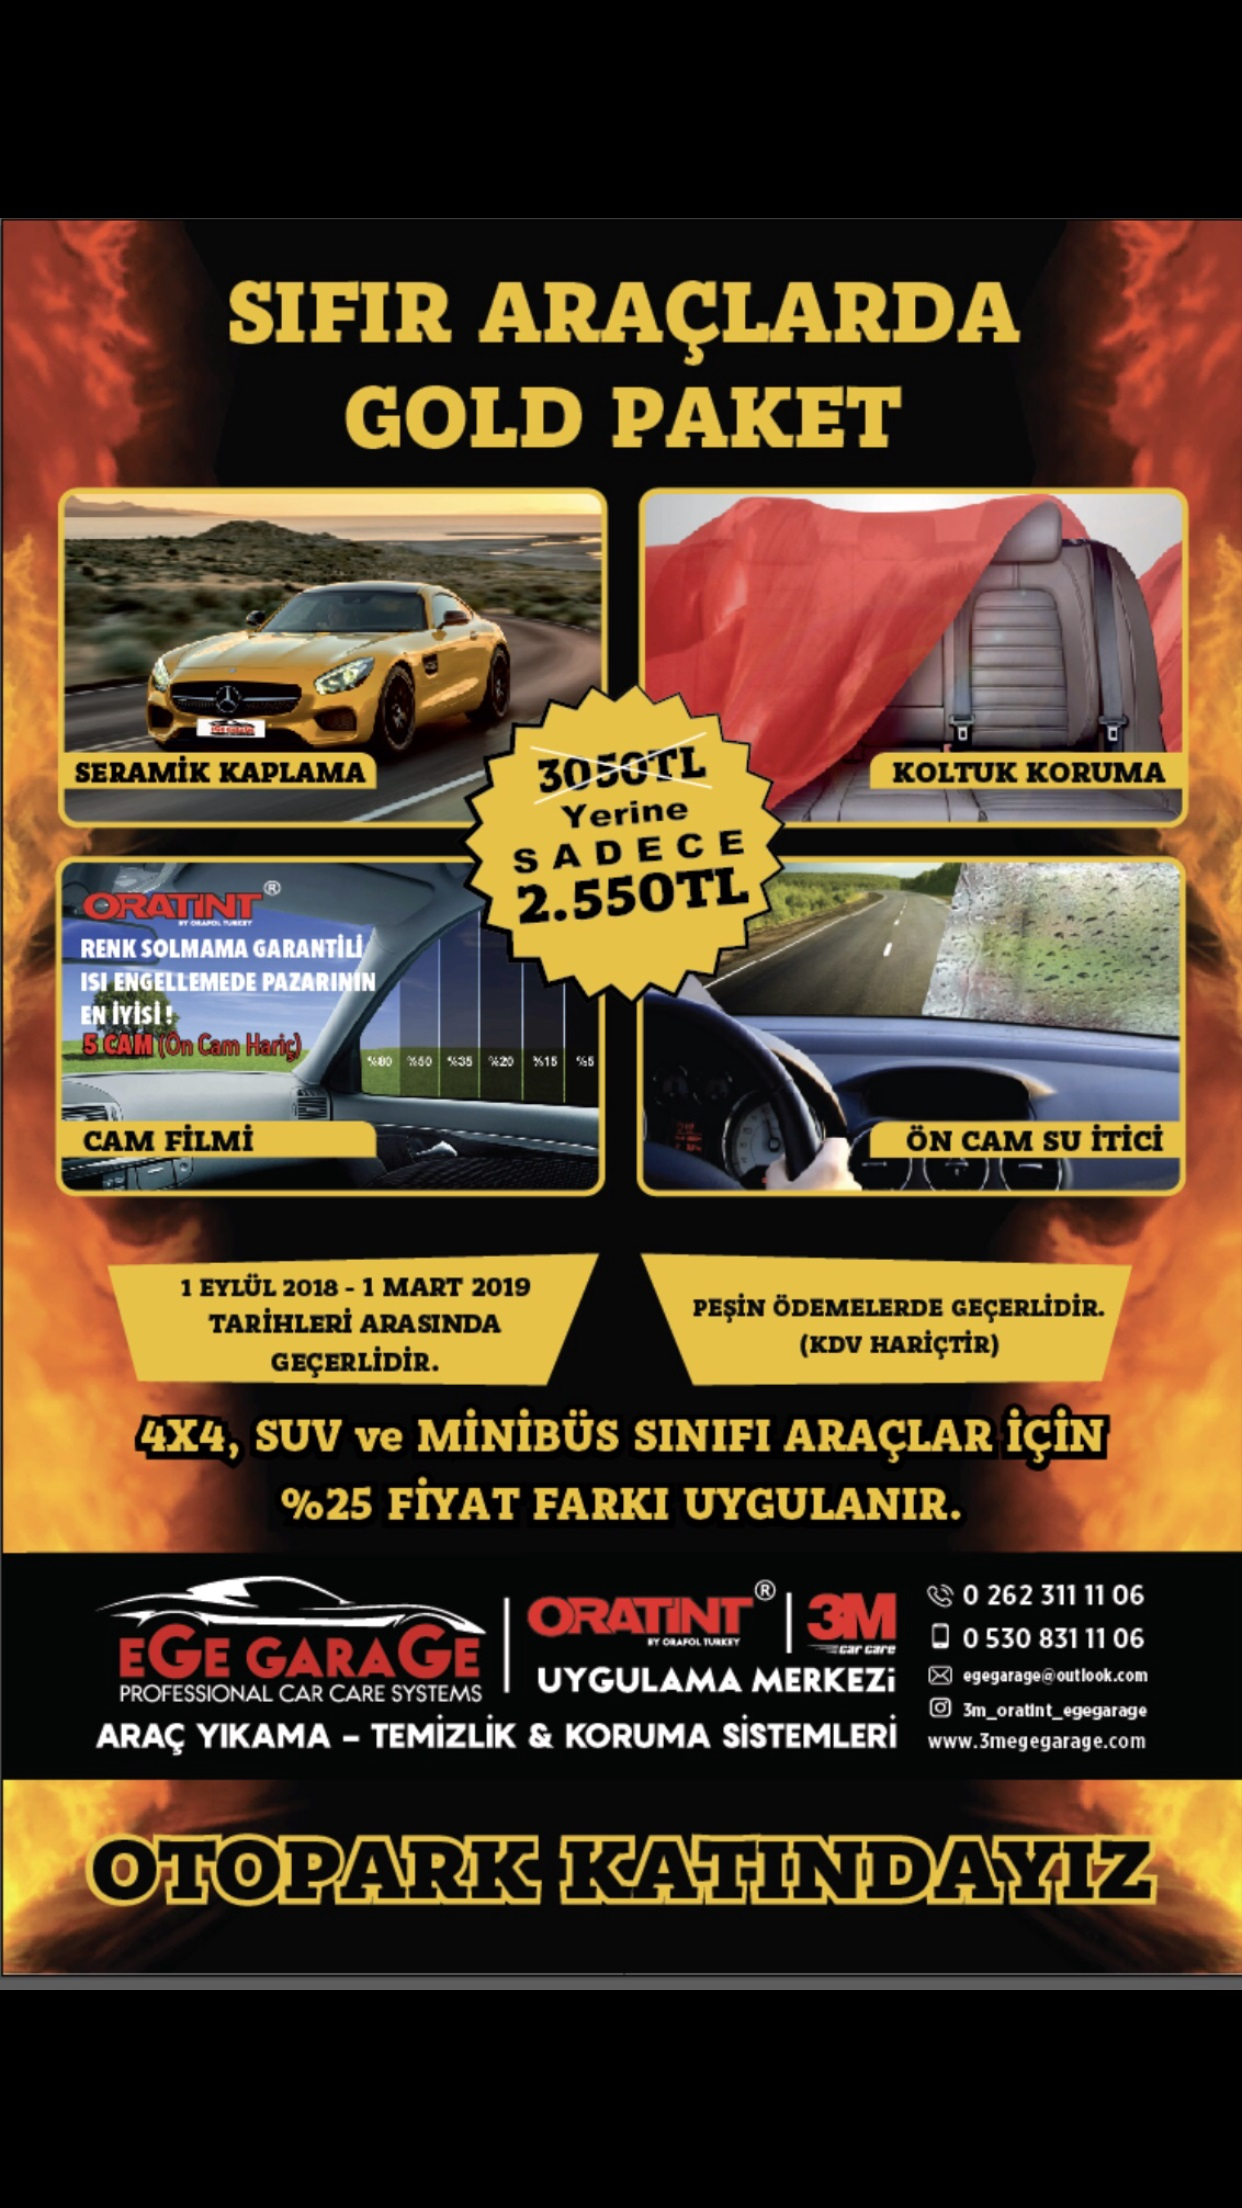 Ege Garage Gold Paket